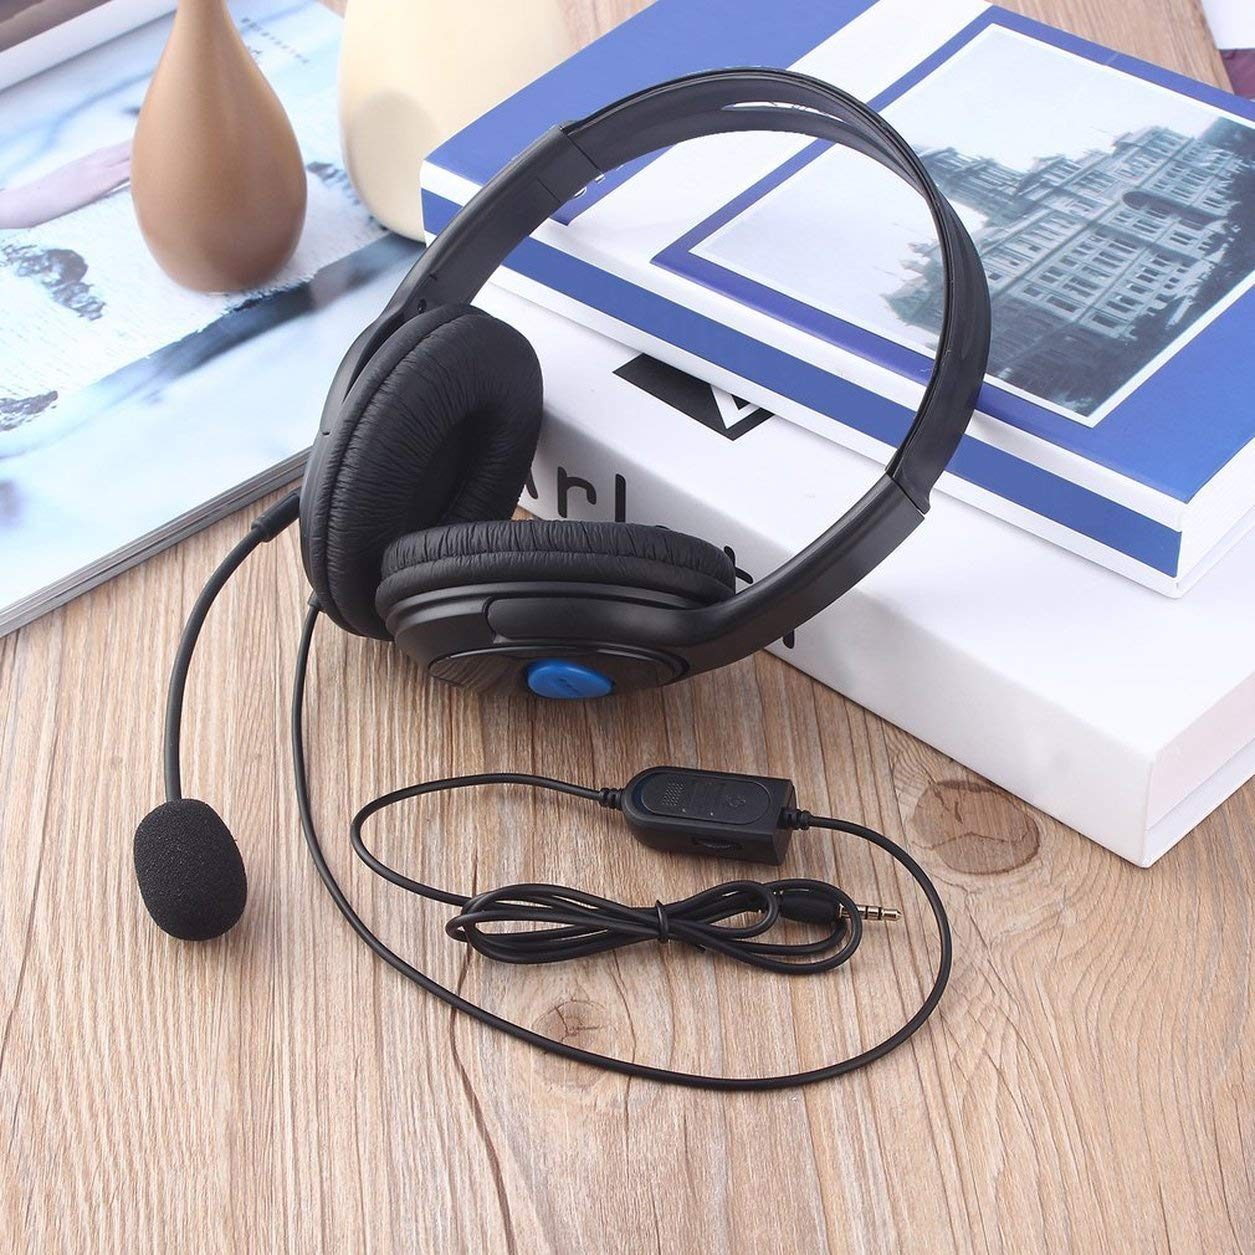 Wired Gaming Headset Headphones with Microphone for Sony PS4 Playstation 4 Dailyinshop